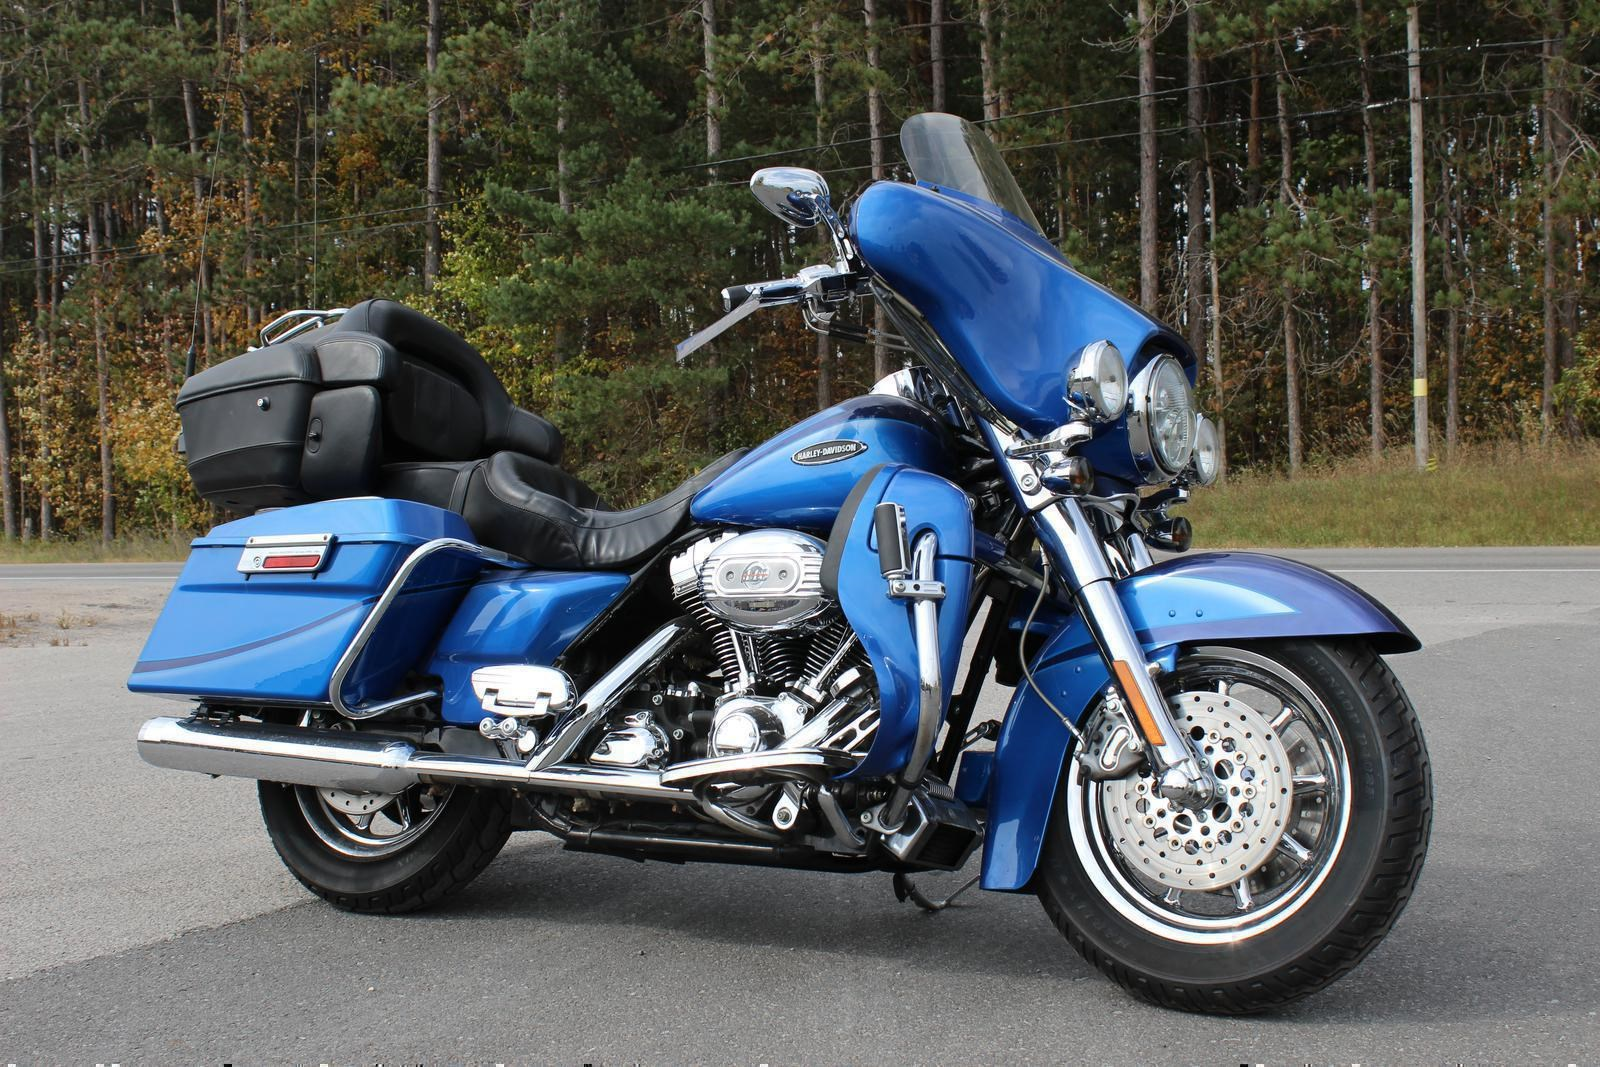 harley davidson cvo ultra classic 2007 used motorcycle for sale in lakefield ontario. Black Bedroom Furniture Sets. Home Design Ideas